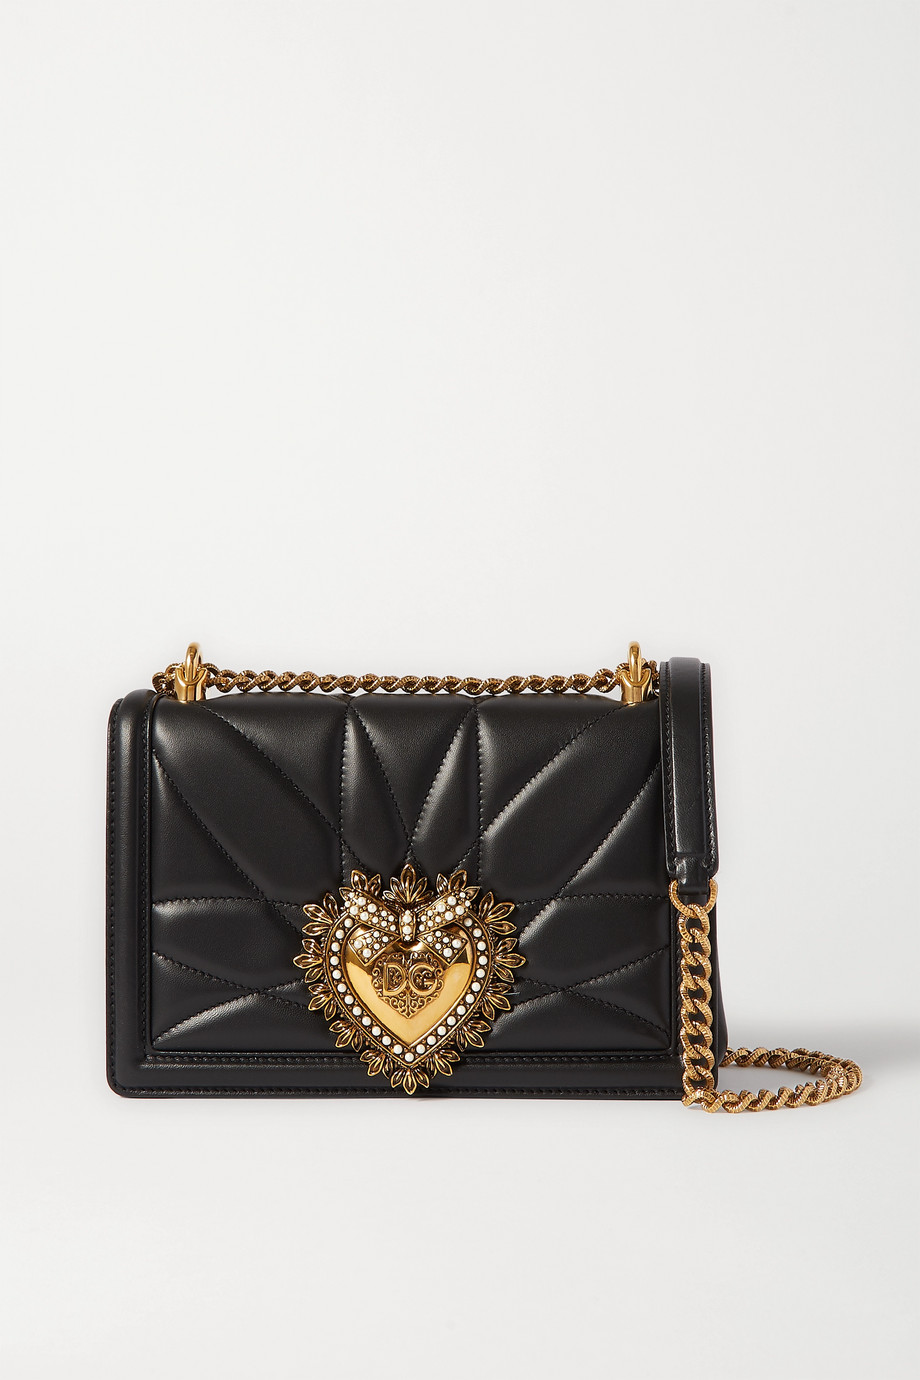 Dolce & Gabbana Devotion mini embellished quilted leather shoulder bag